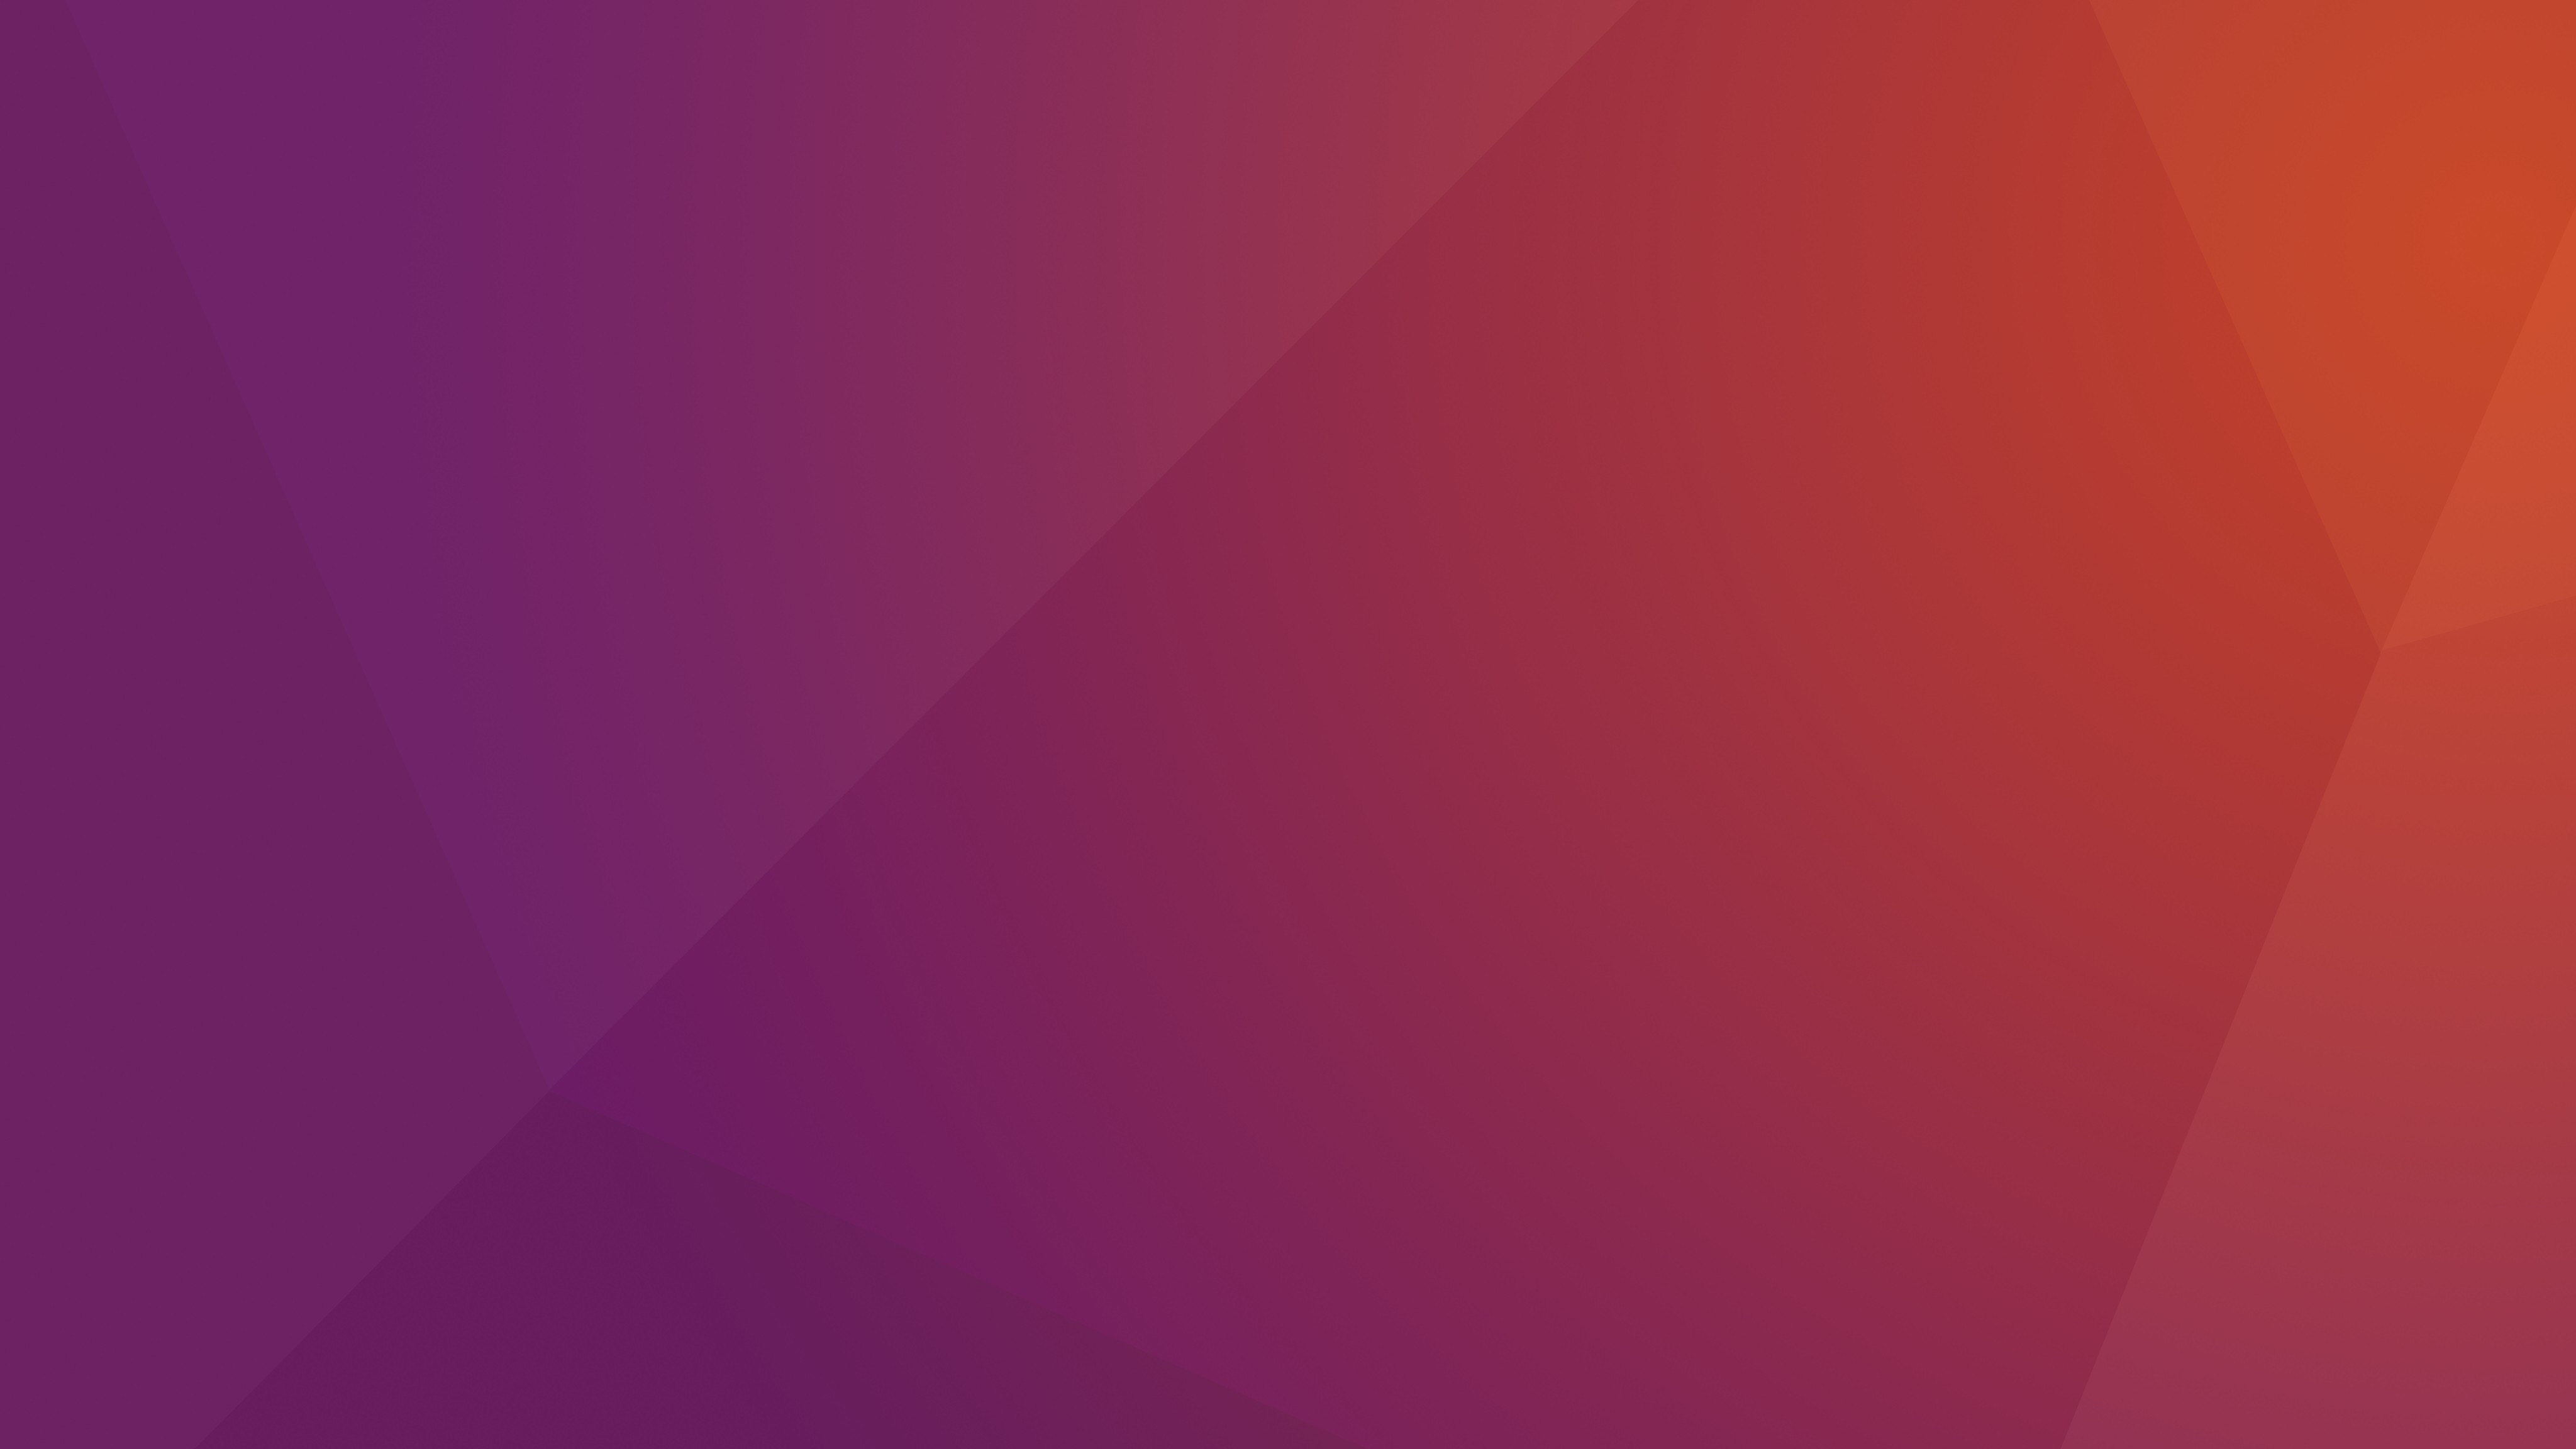 Ubuntu 1604 LTS Wallpapers Revealed For Desktop And Phone